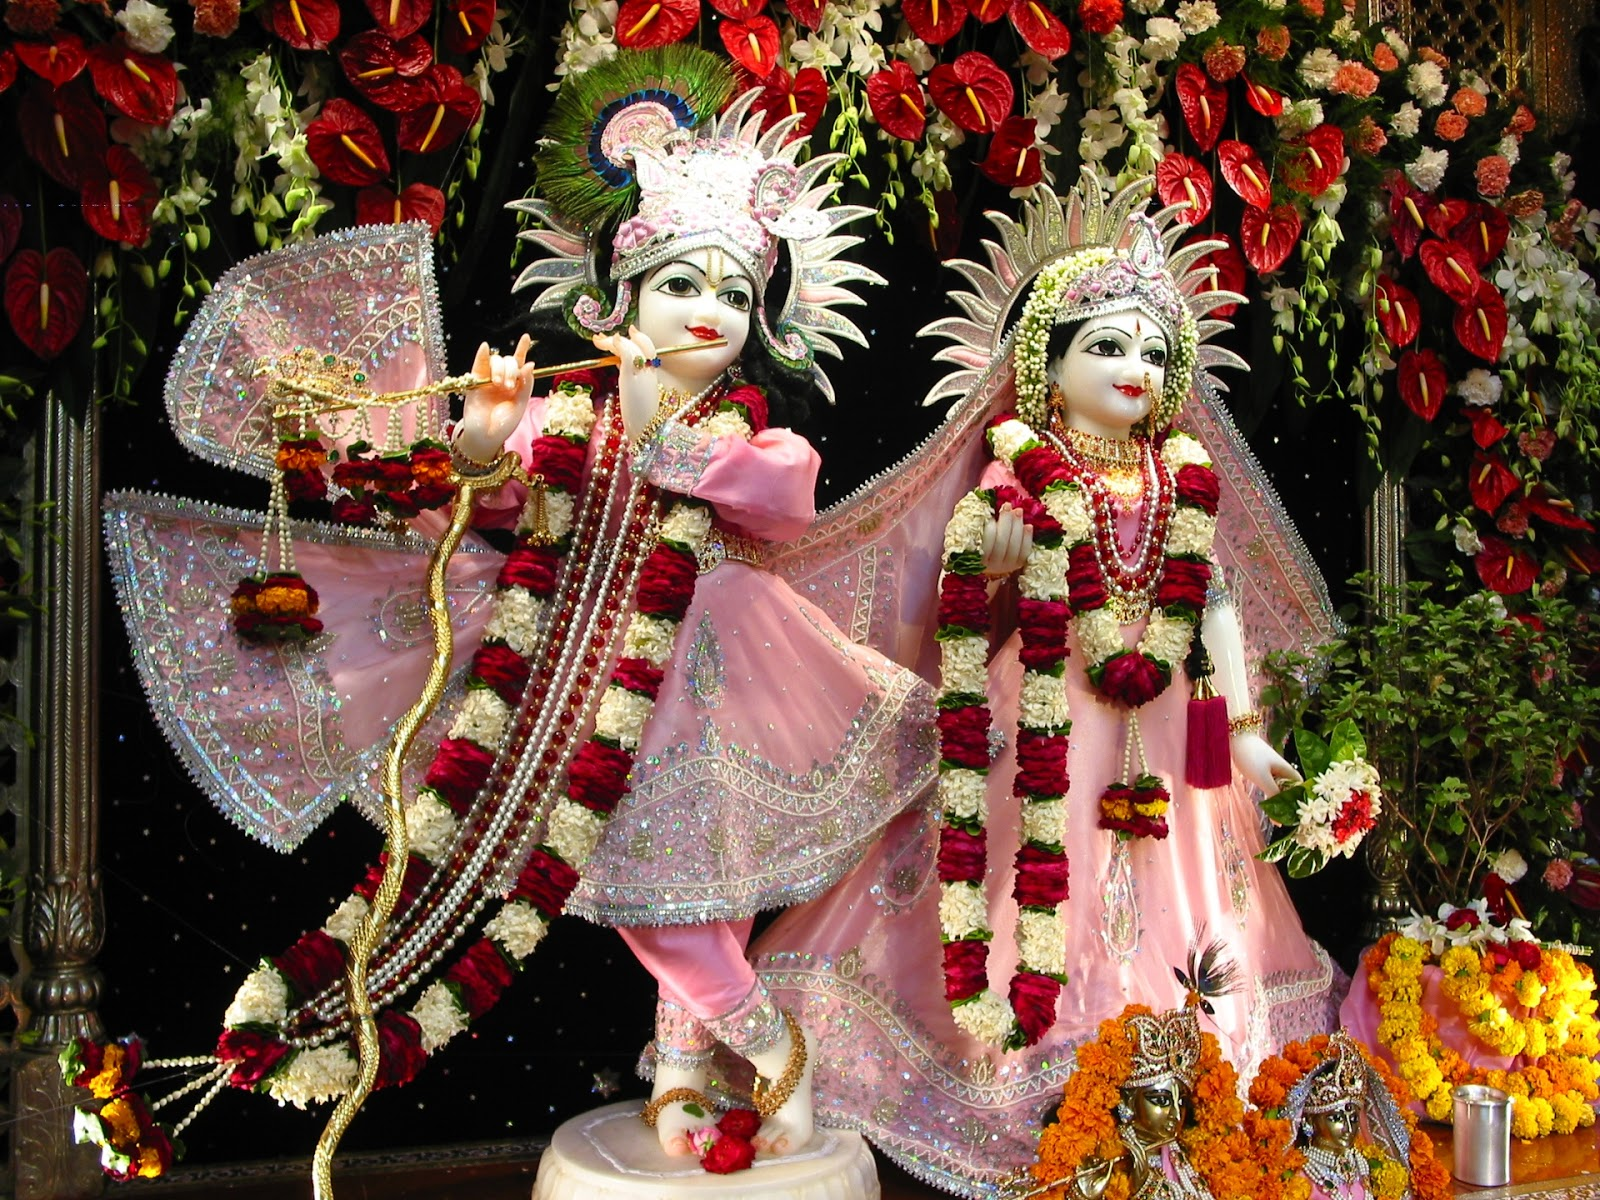 Best Hd Photos Of Radha Krishna Blessings Festival Chaska